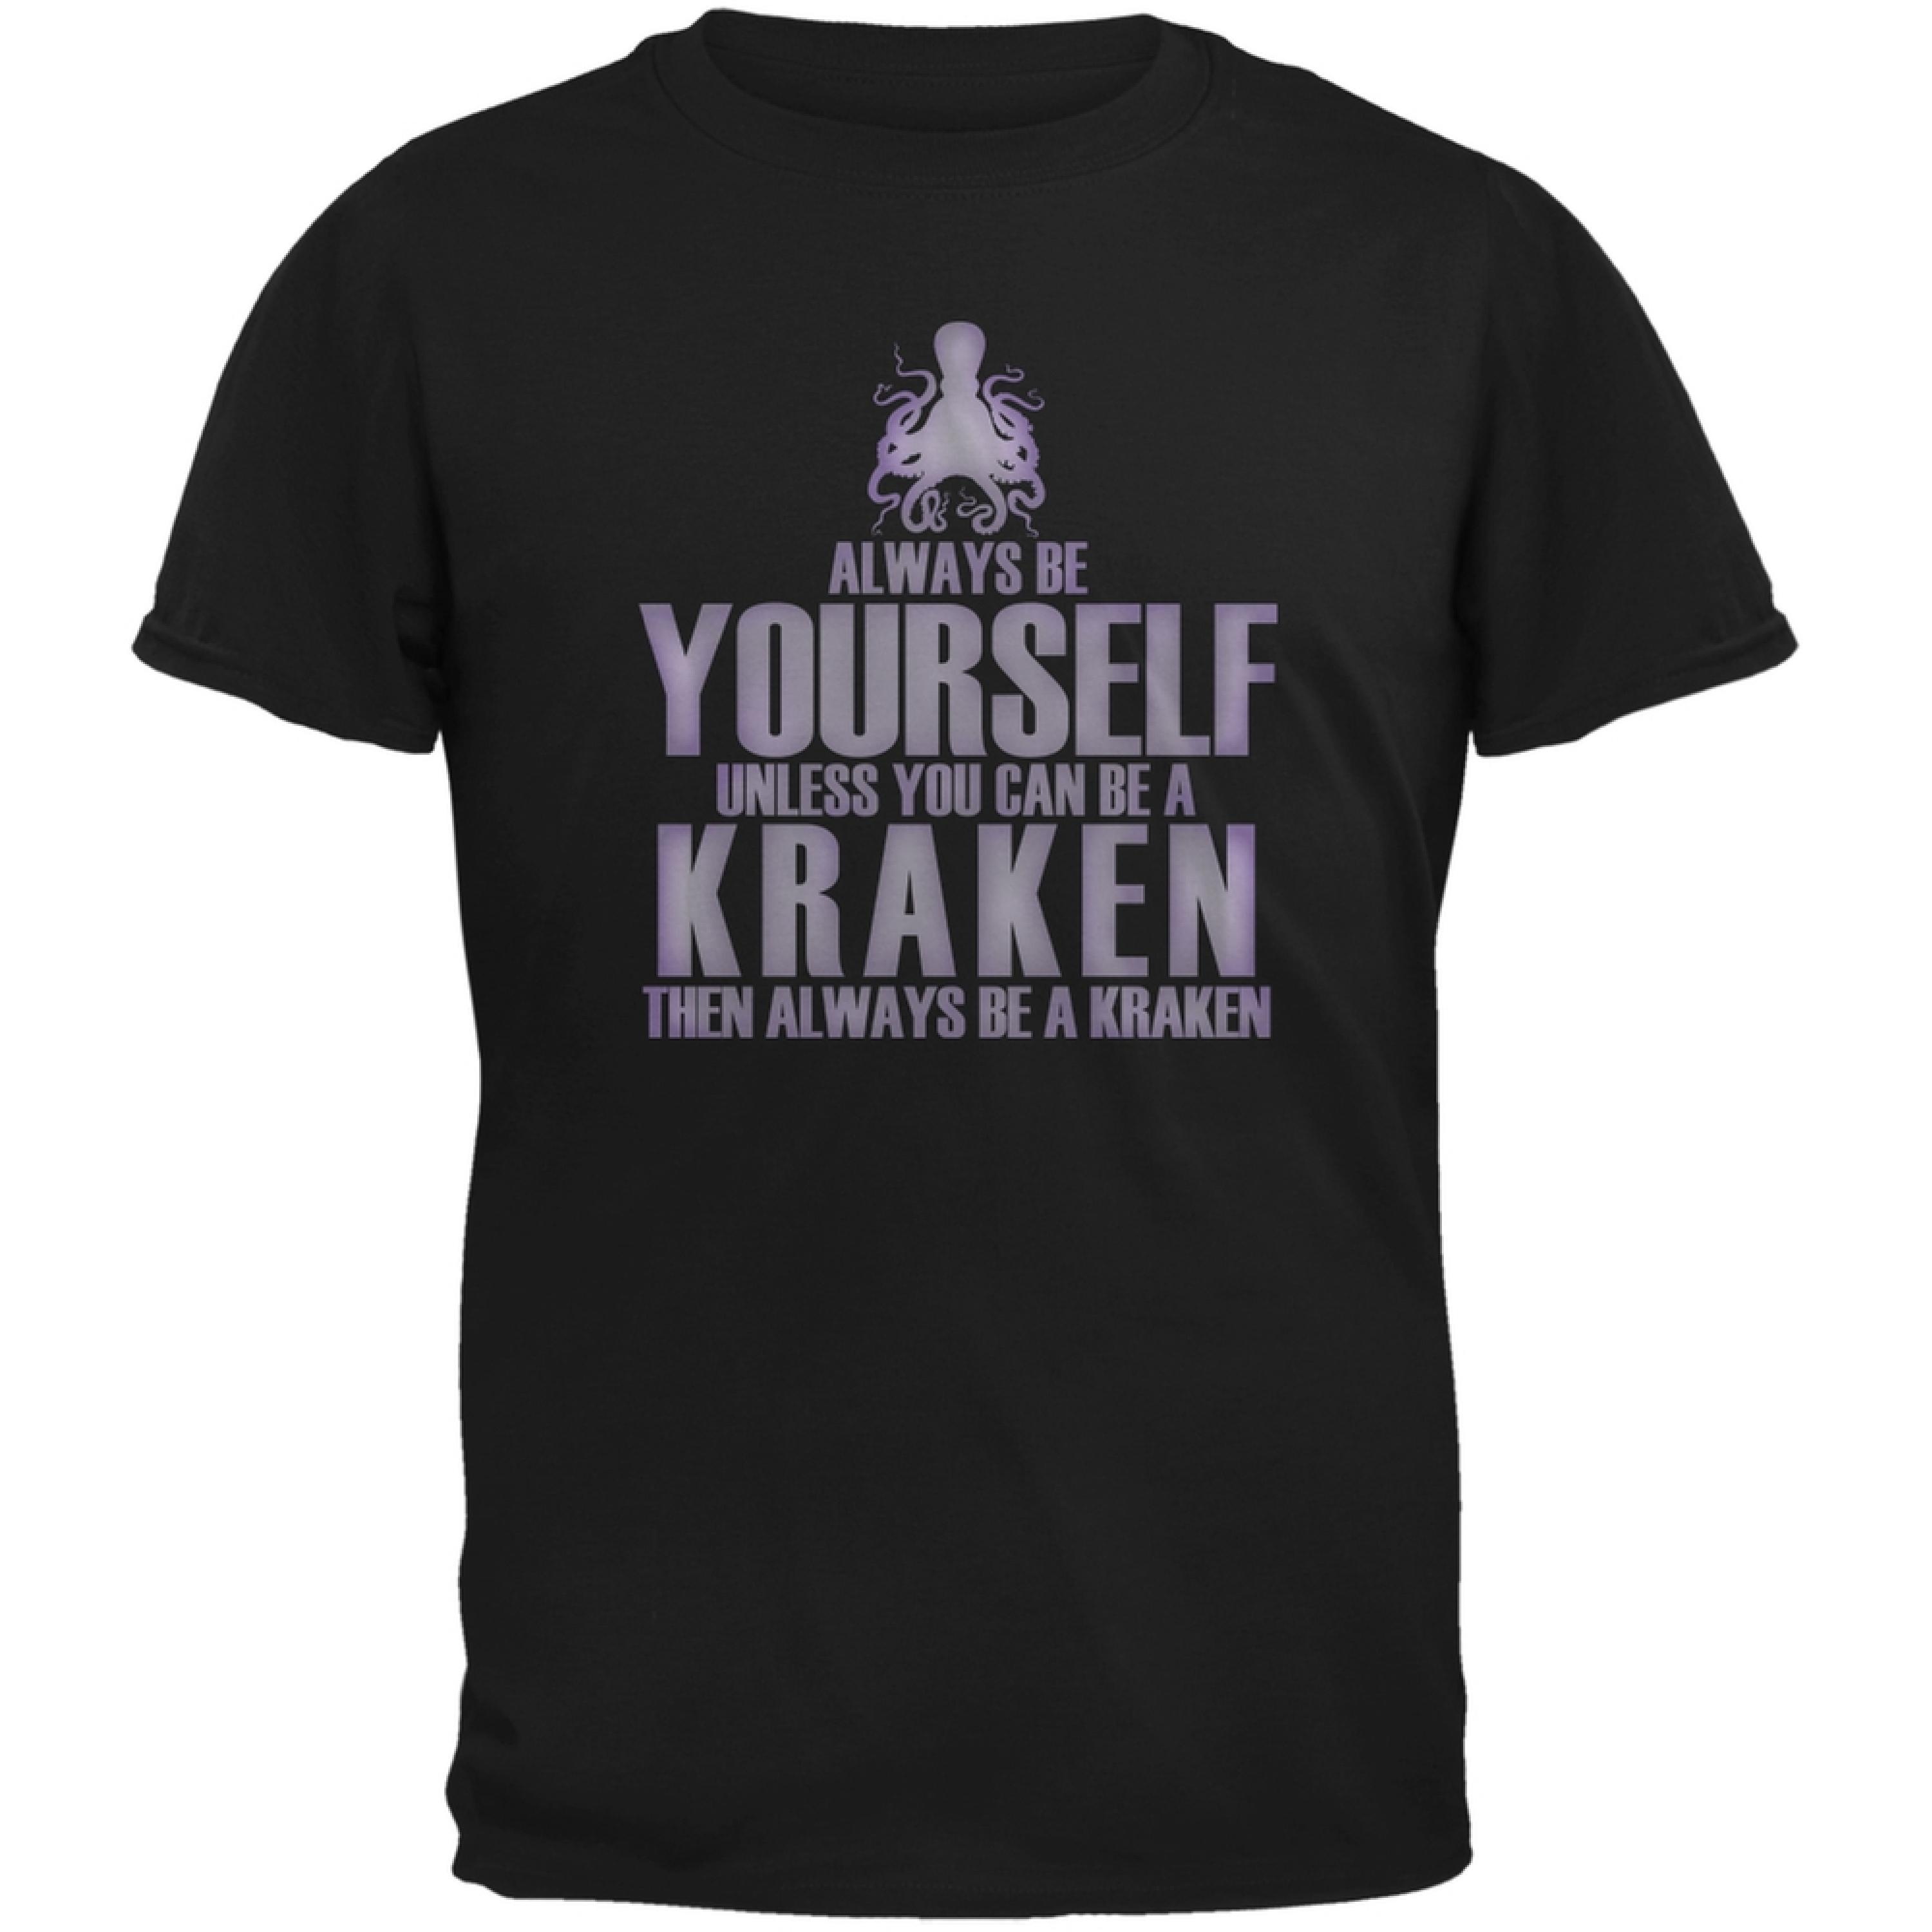 Always Be Yourself Kraken Black Adult T-Shirt